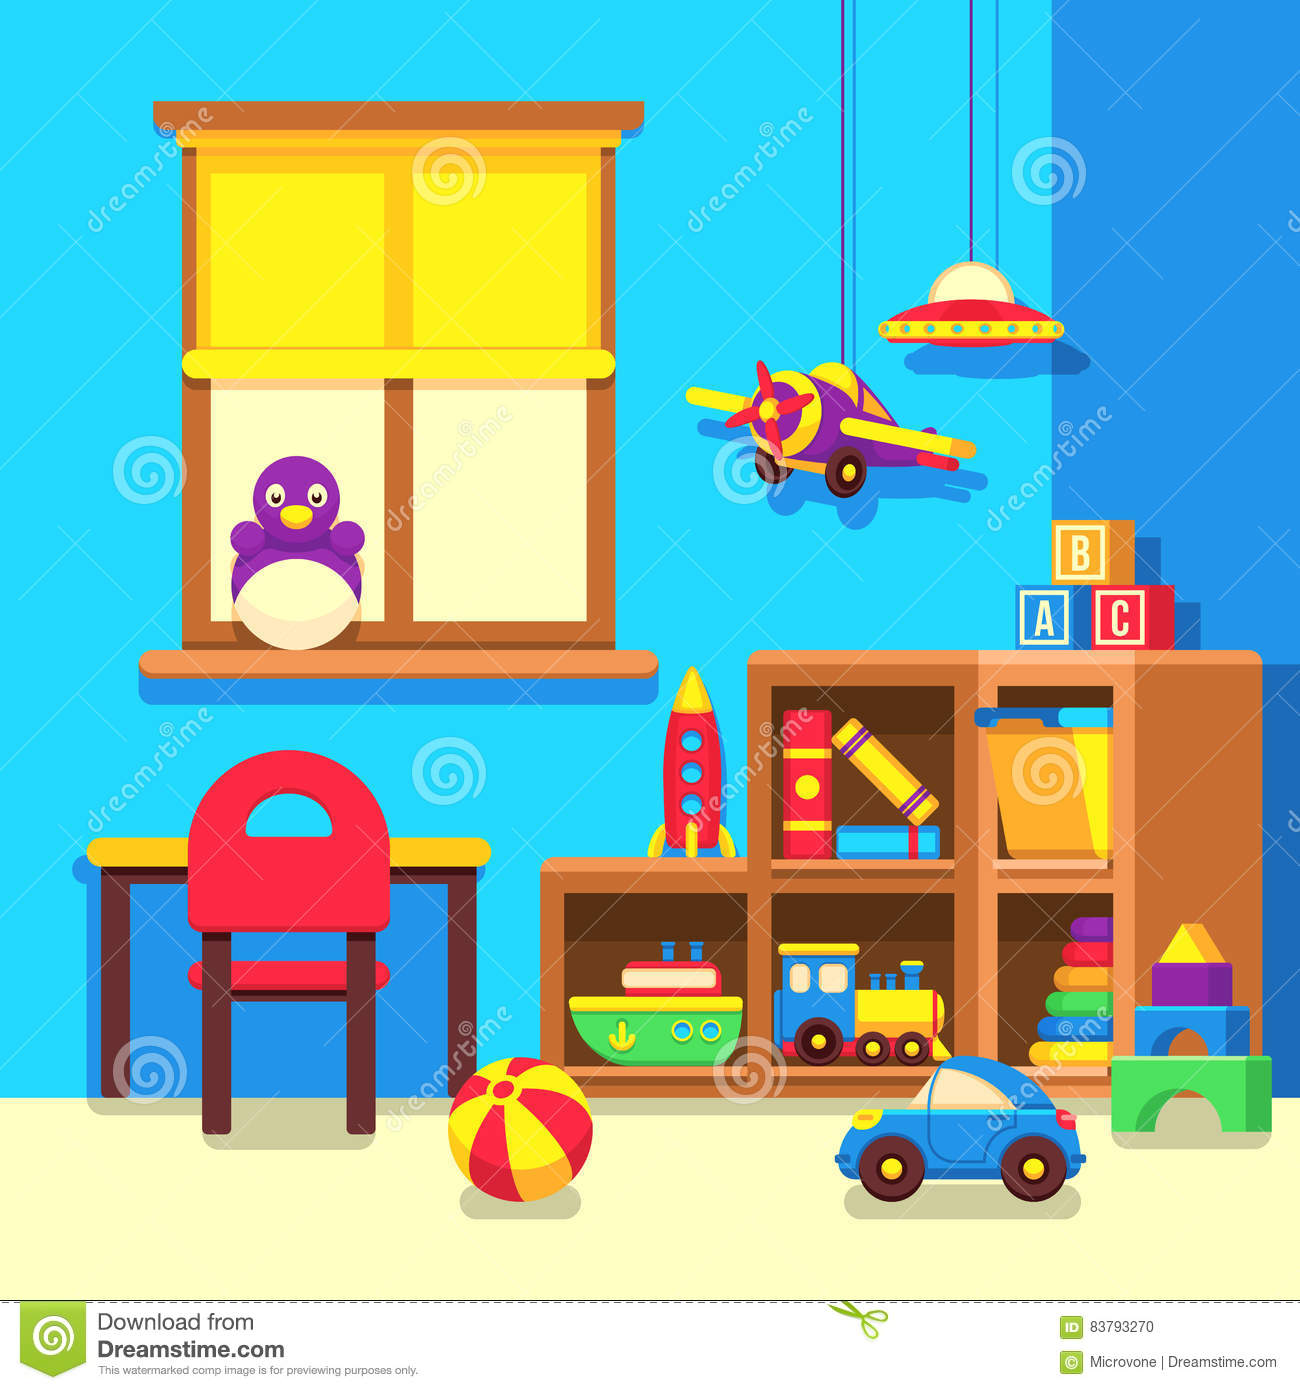 Preschool toys royalty free stock image cartoondealer for Cuarto ordenado animado